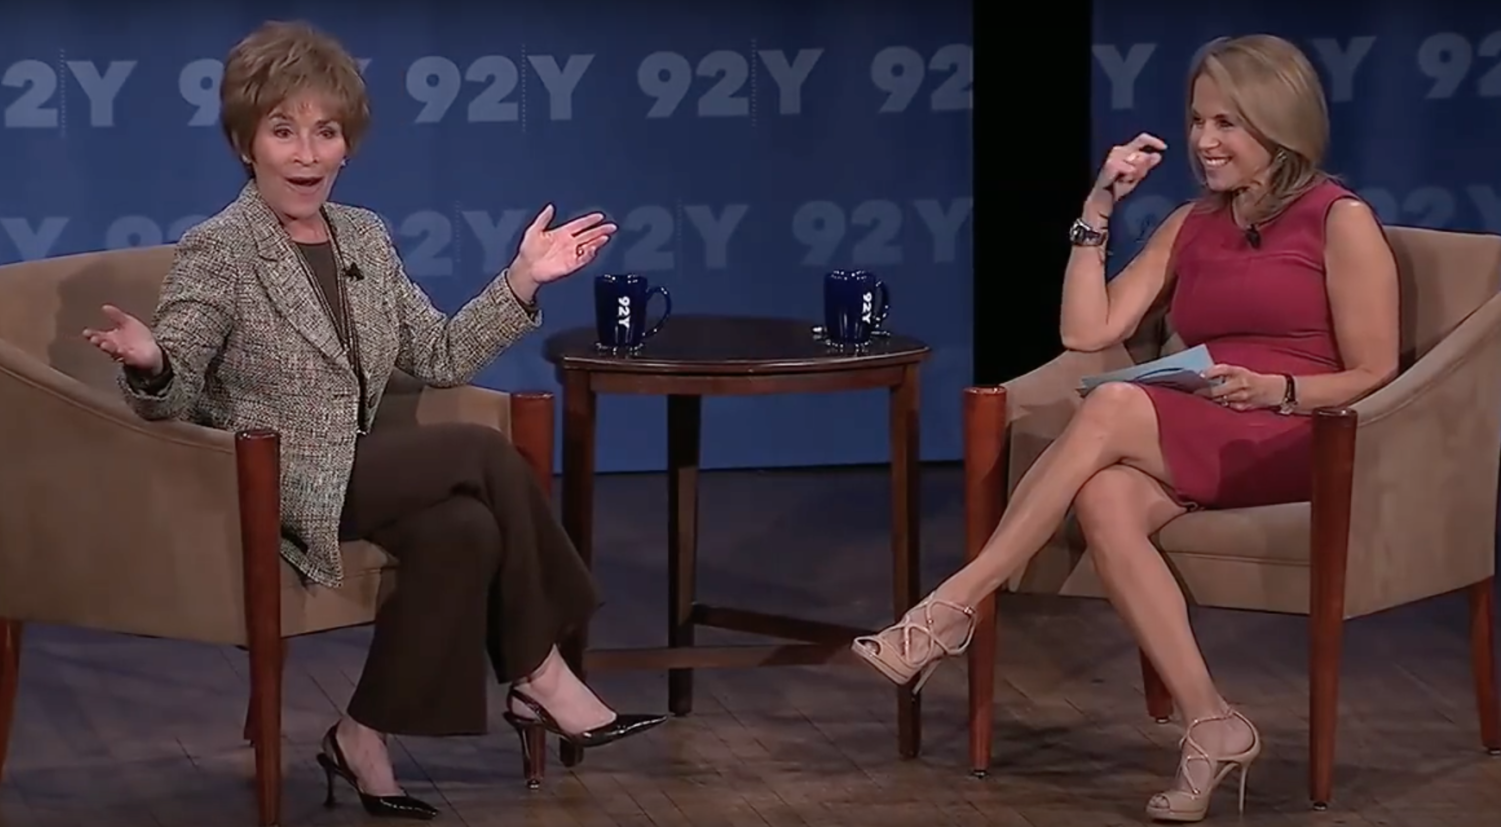 Judge Judy and Katie Couric in the 2013 interview